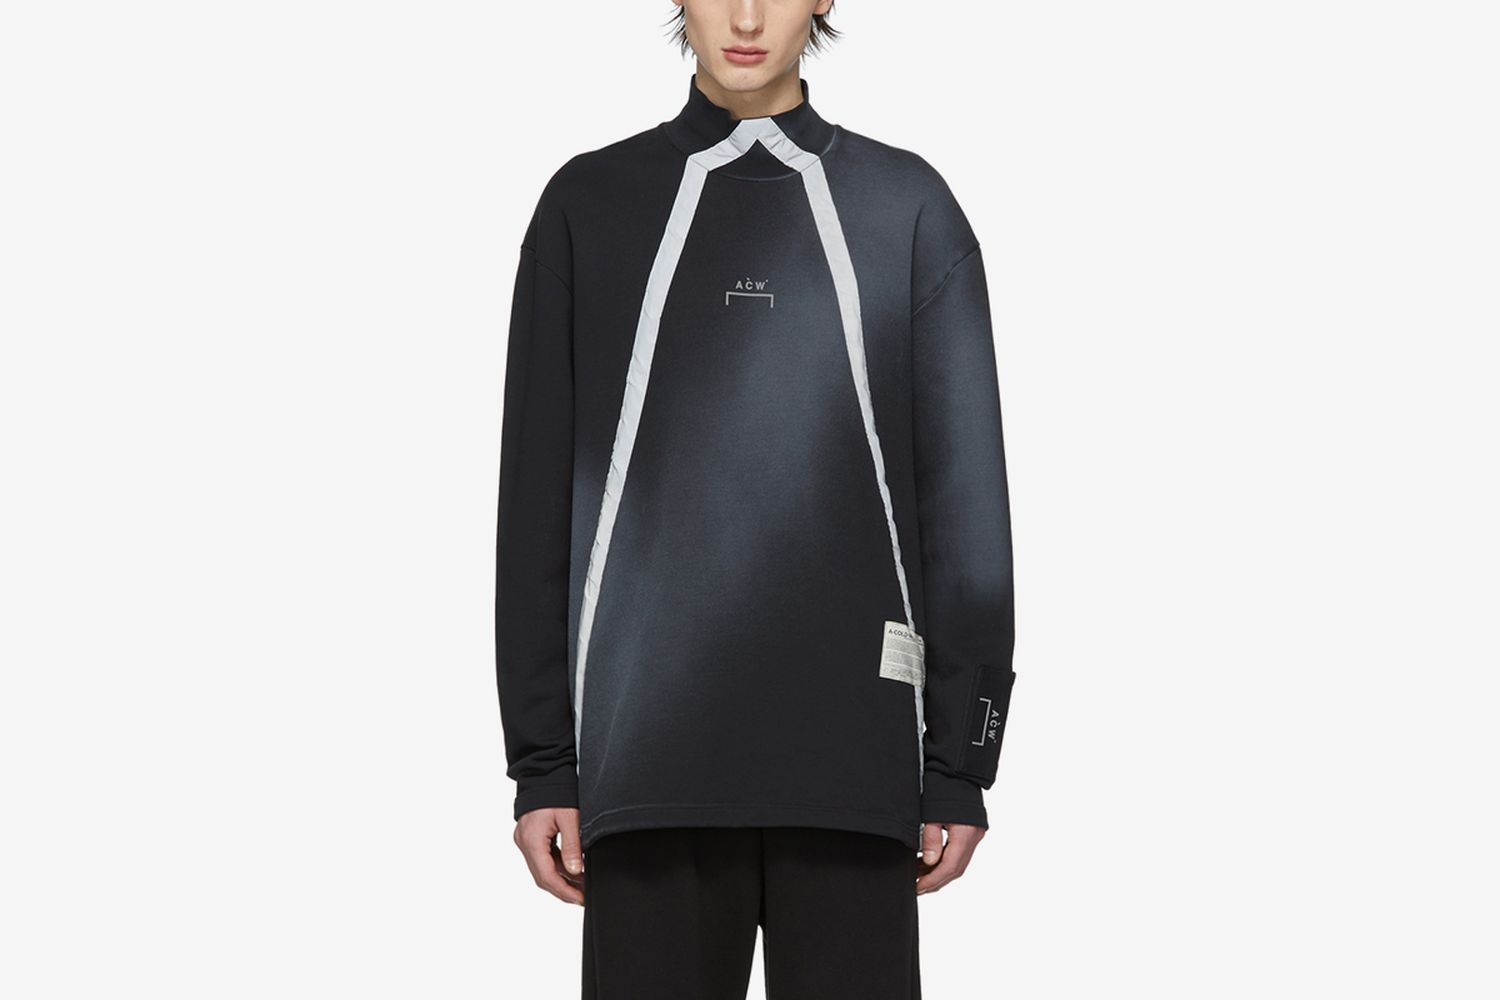 SSENSE Exclusive Long Sleeve Turtleneck